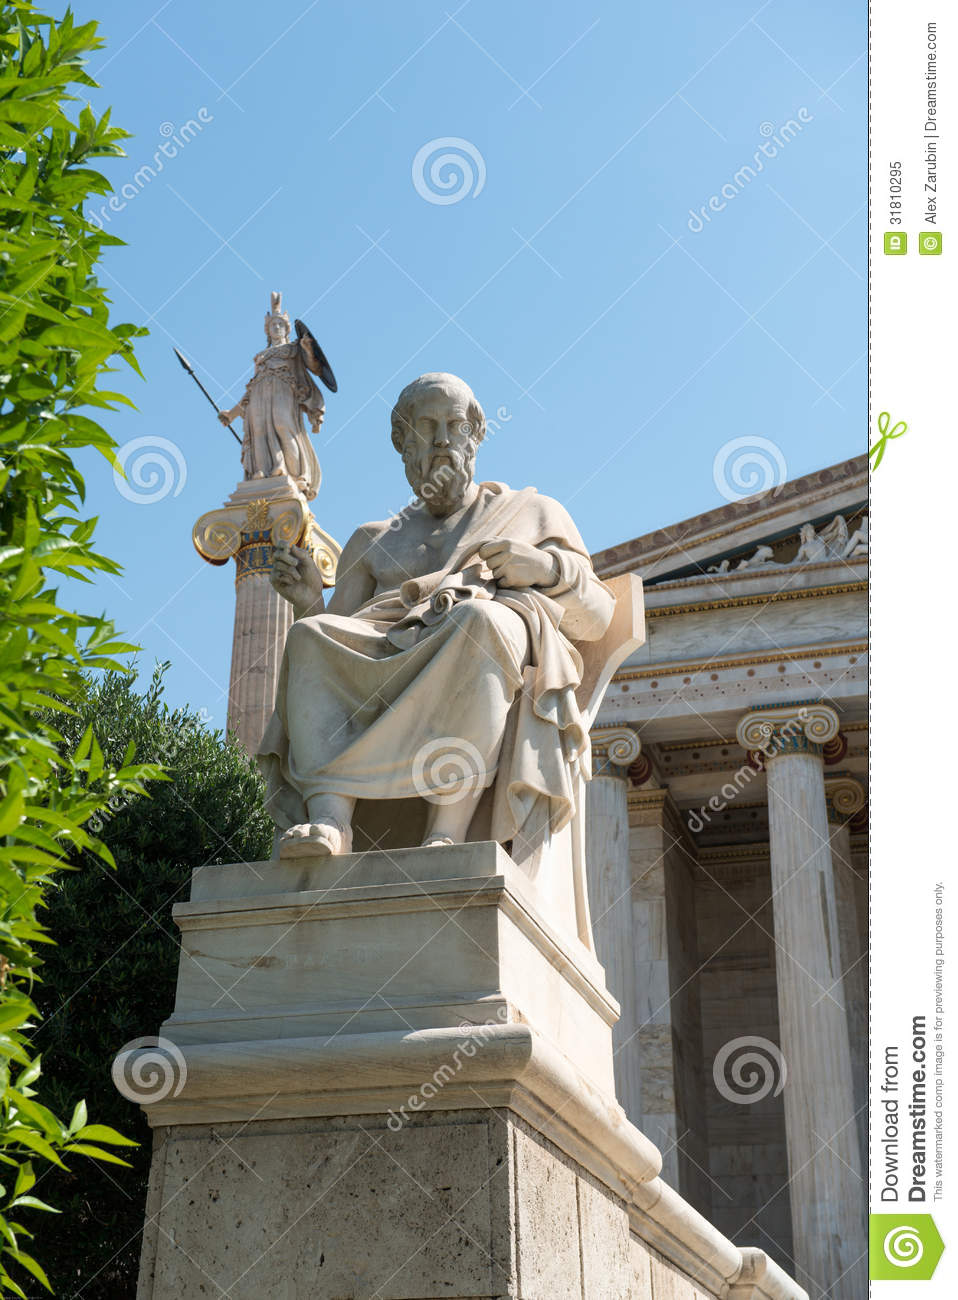 ancient greek philosophy Who was aristotle aristotle was a greek philosopher who was a student of plato's he may have been a teacher of alexander the great aristotle's main work was to try to figure out a system to classify animals, plants, systems of government and many other things.